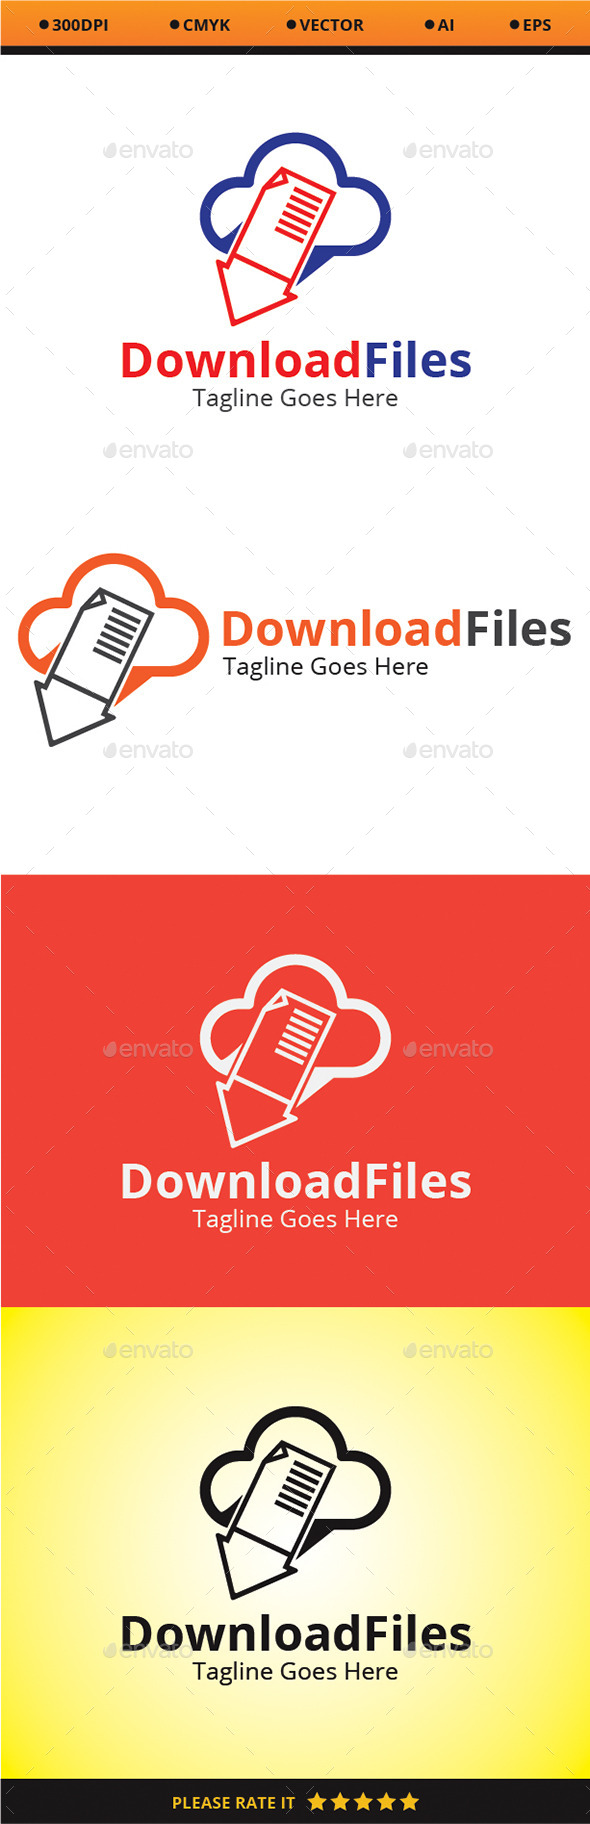 Download Files - Logo Templates